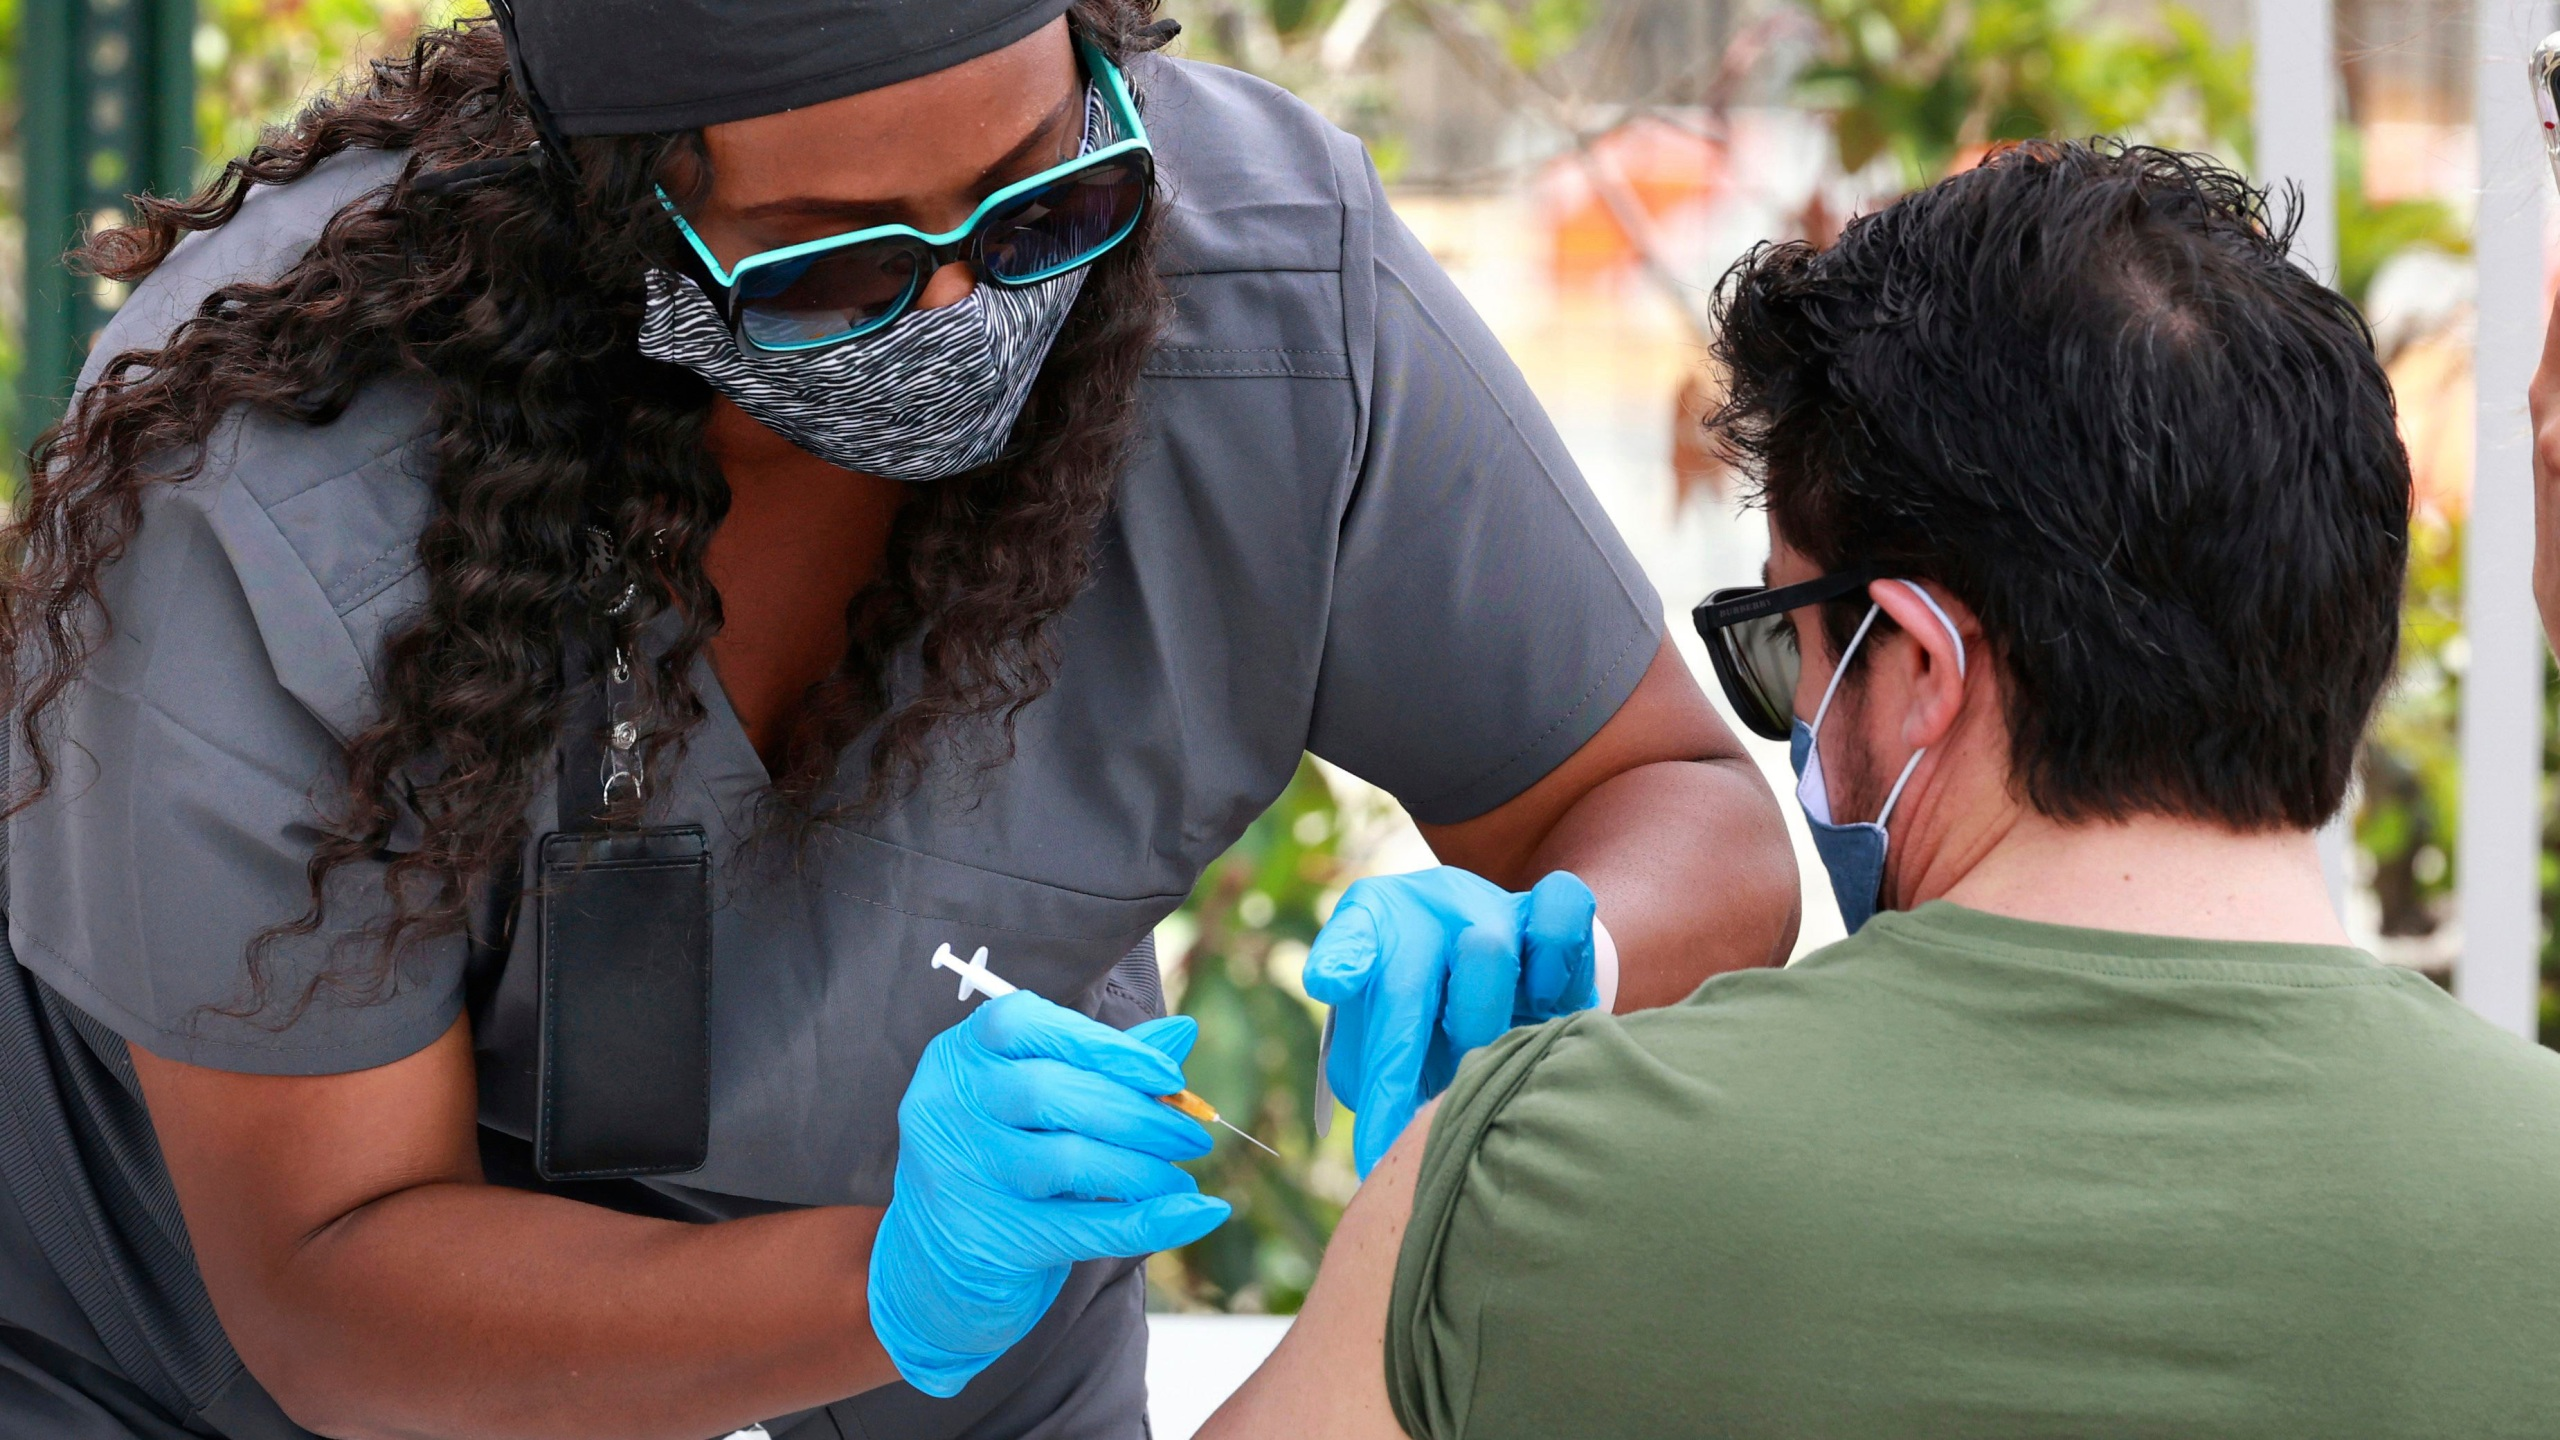 FILE - In this June 17, 2021, file photo, an Orange County resident receives the COVID-19 vaccine at the Florida Division of Emergency Management mobile vaccination site at Camping World Stadium in Orlando, Fla. COVID-19 deaths in the U.S. have dipped below 300 a day for the first time since the early days of the disaster in March 2020, while the number of Americans fully vaccinated has reached about 150 million. (Joe Burbank/Orlando Sentinel via AP, File)